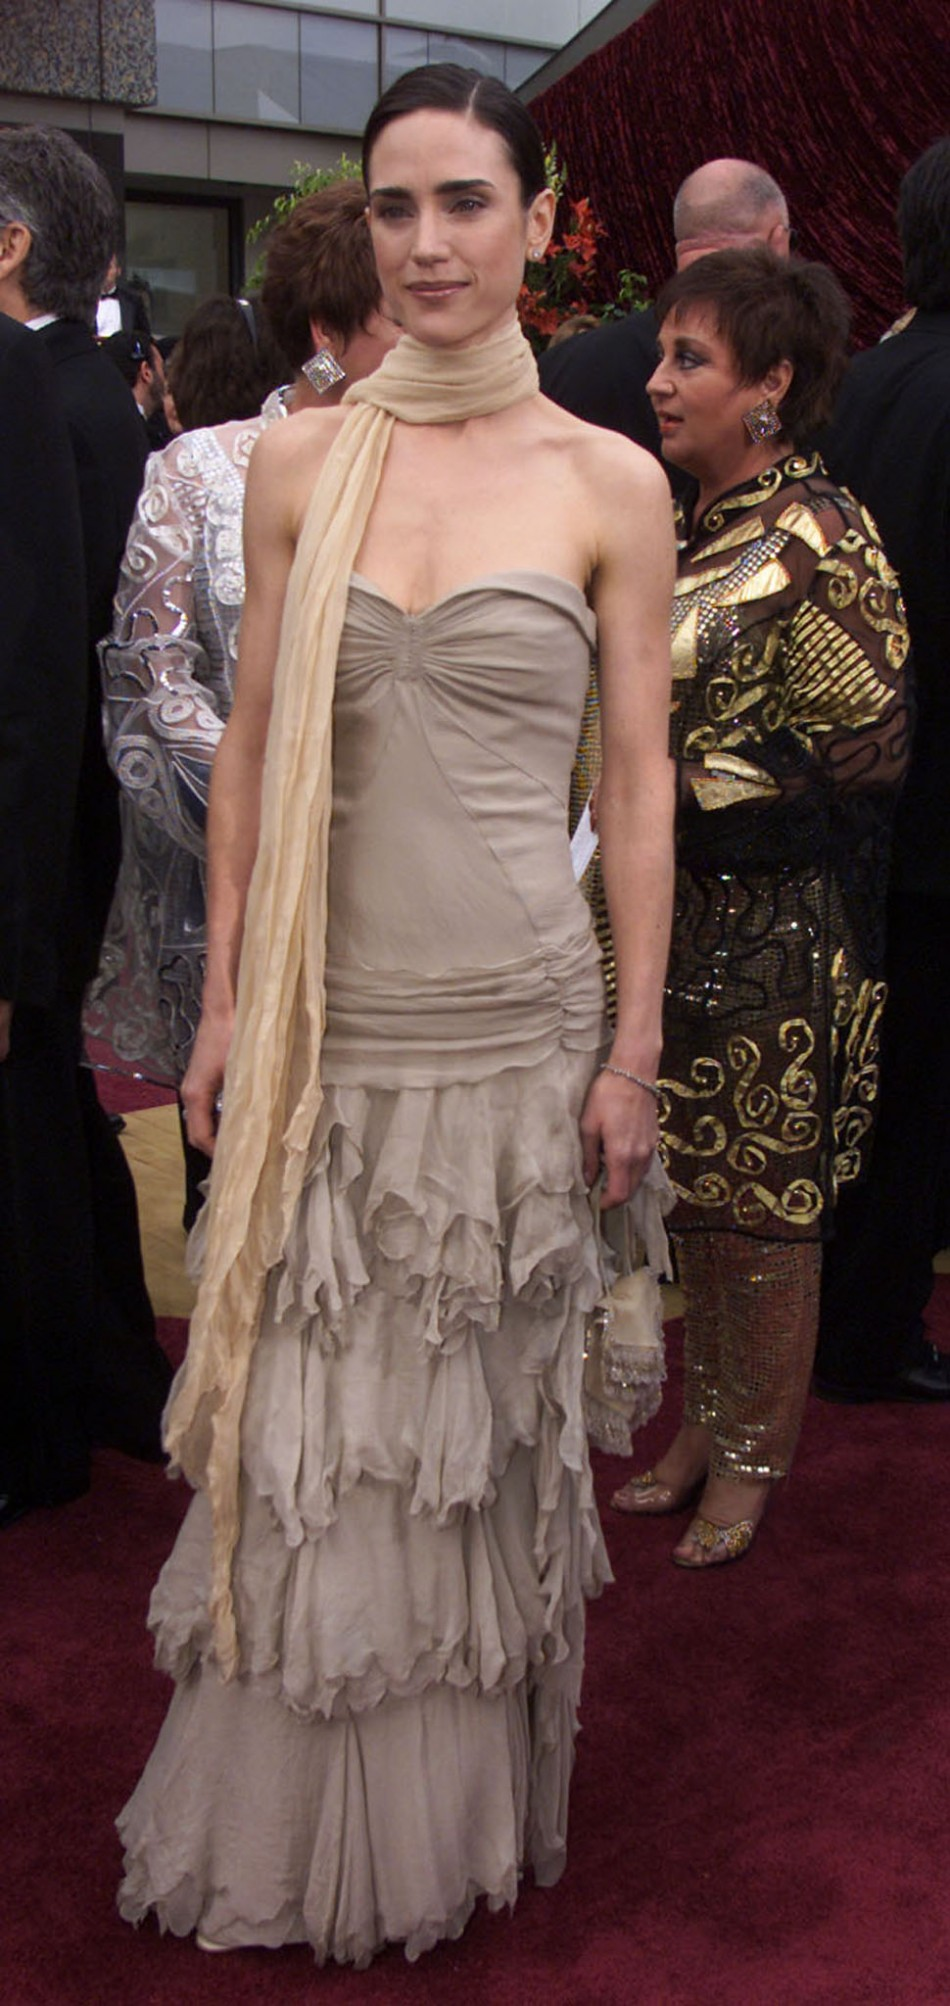 Oscars 2012 Red Carpet: Worst Dresses of All Time [PHOTOS]